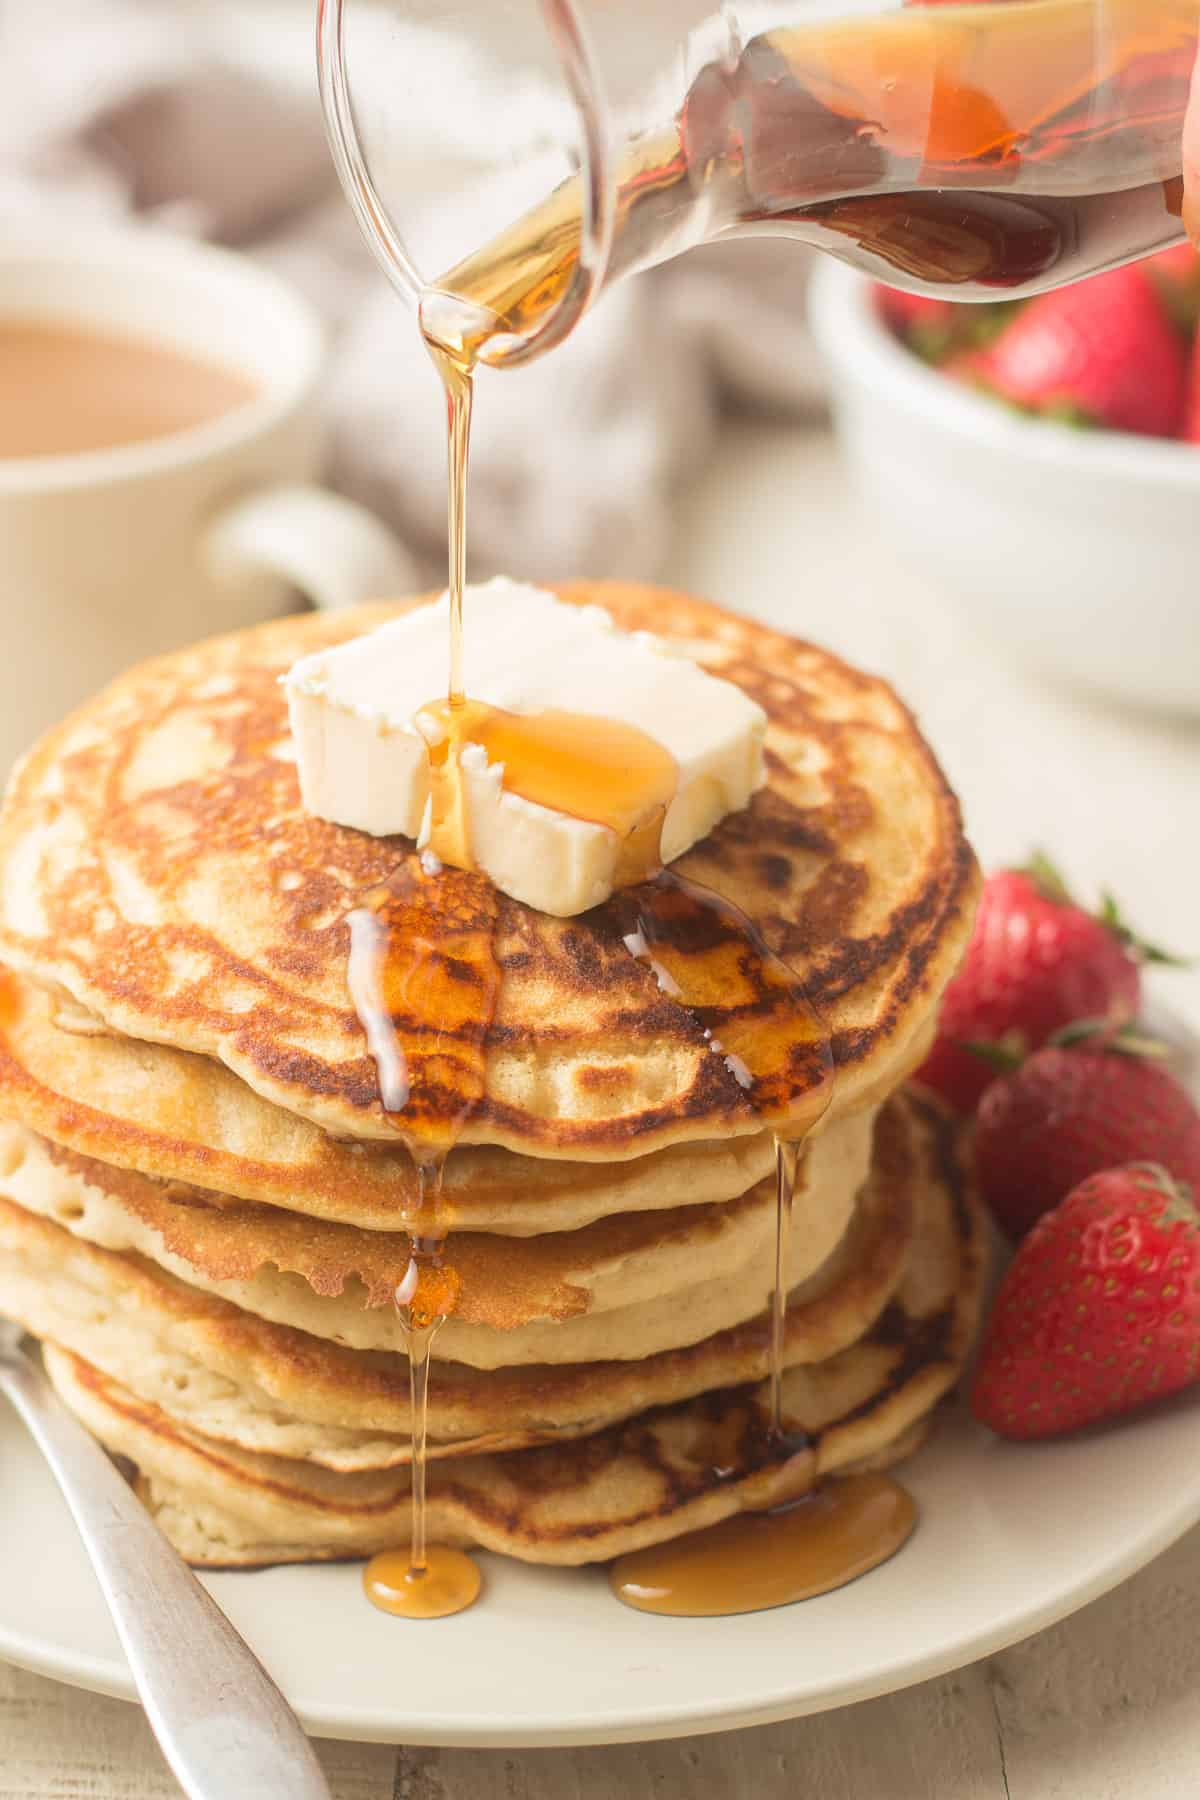 Hand Drizzling Maple Syrup Over a Stack of Vegan Pancakes